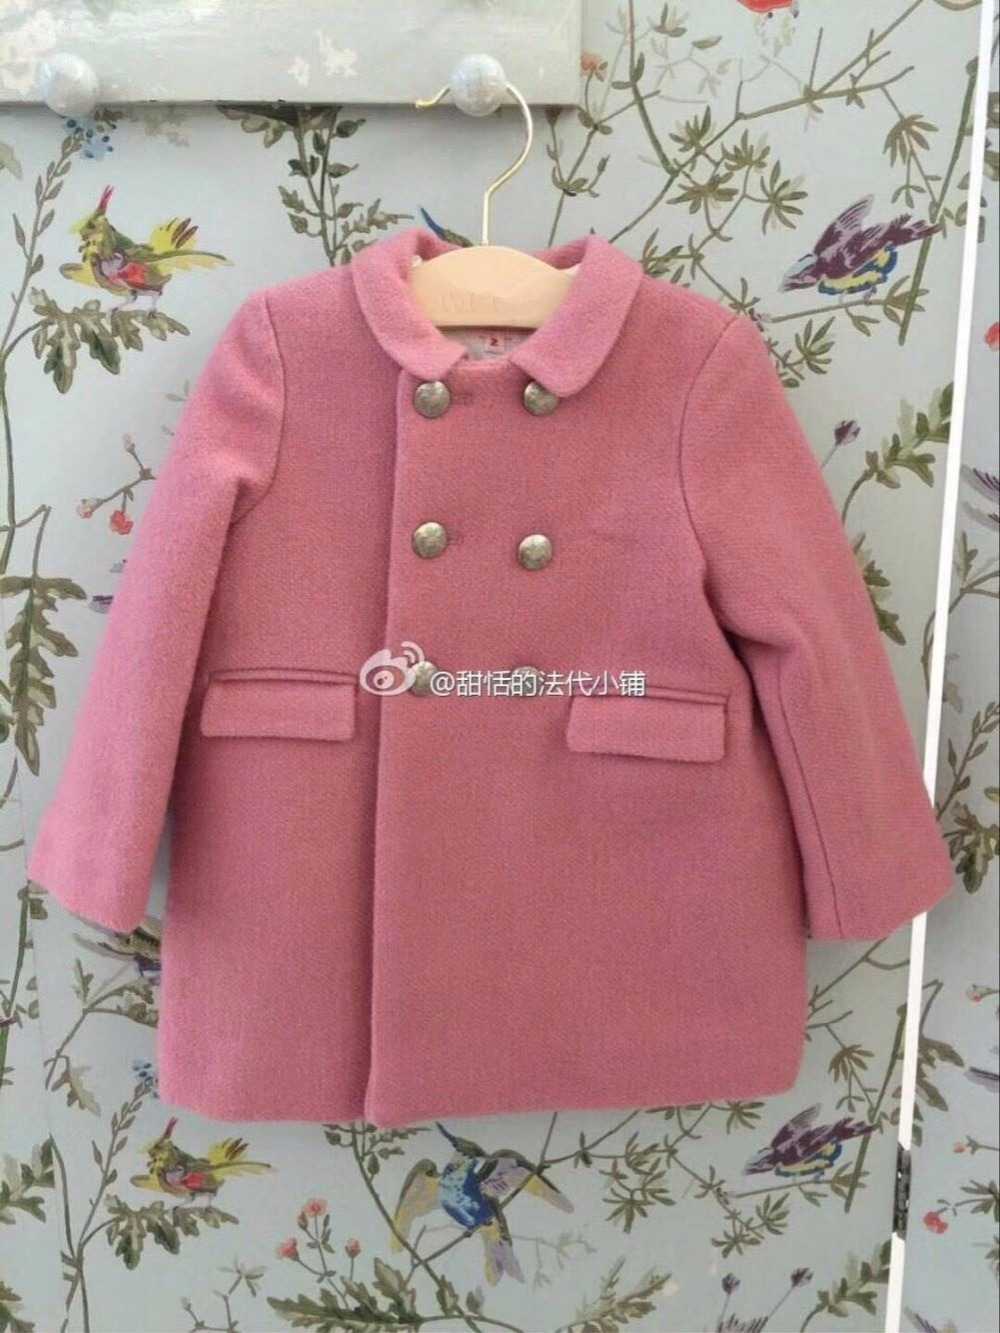 Kids coat wool coat cotton padded thick warm coat solid pink color sweet baby girls outwear winter baby girls clothes children winter coats jacket baby boys warm outerwear thickening outdoors kids snow proof coat parkas cotton padded clothes